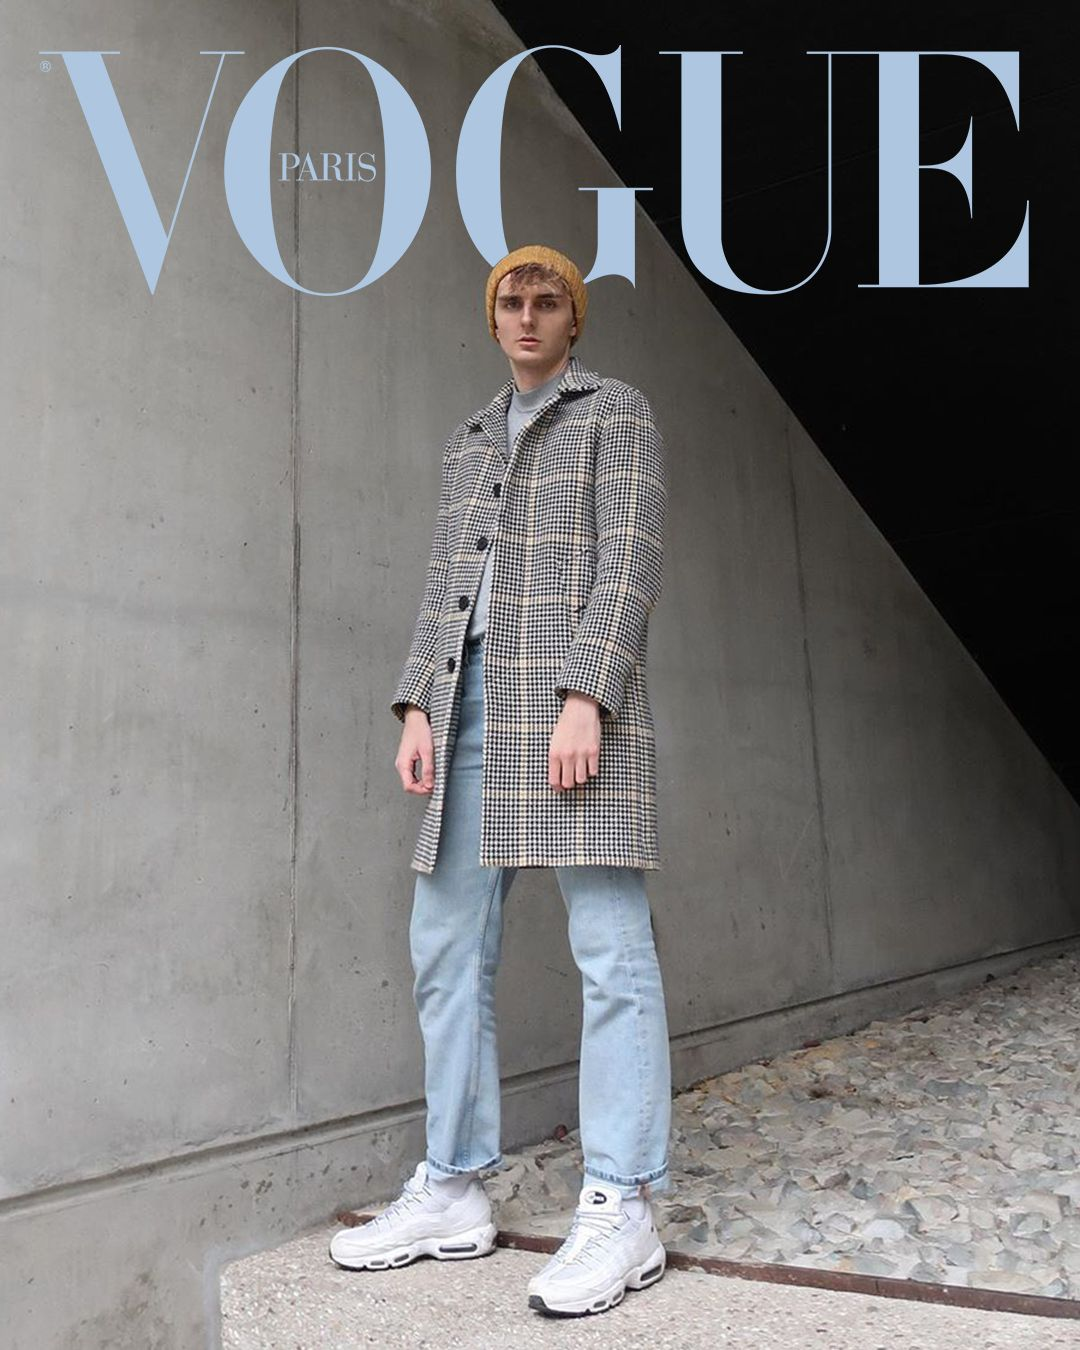 Vogue Challenge By Maurice Style Tik Tok Mode Blog Mode Homme Blog Mode